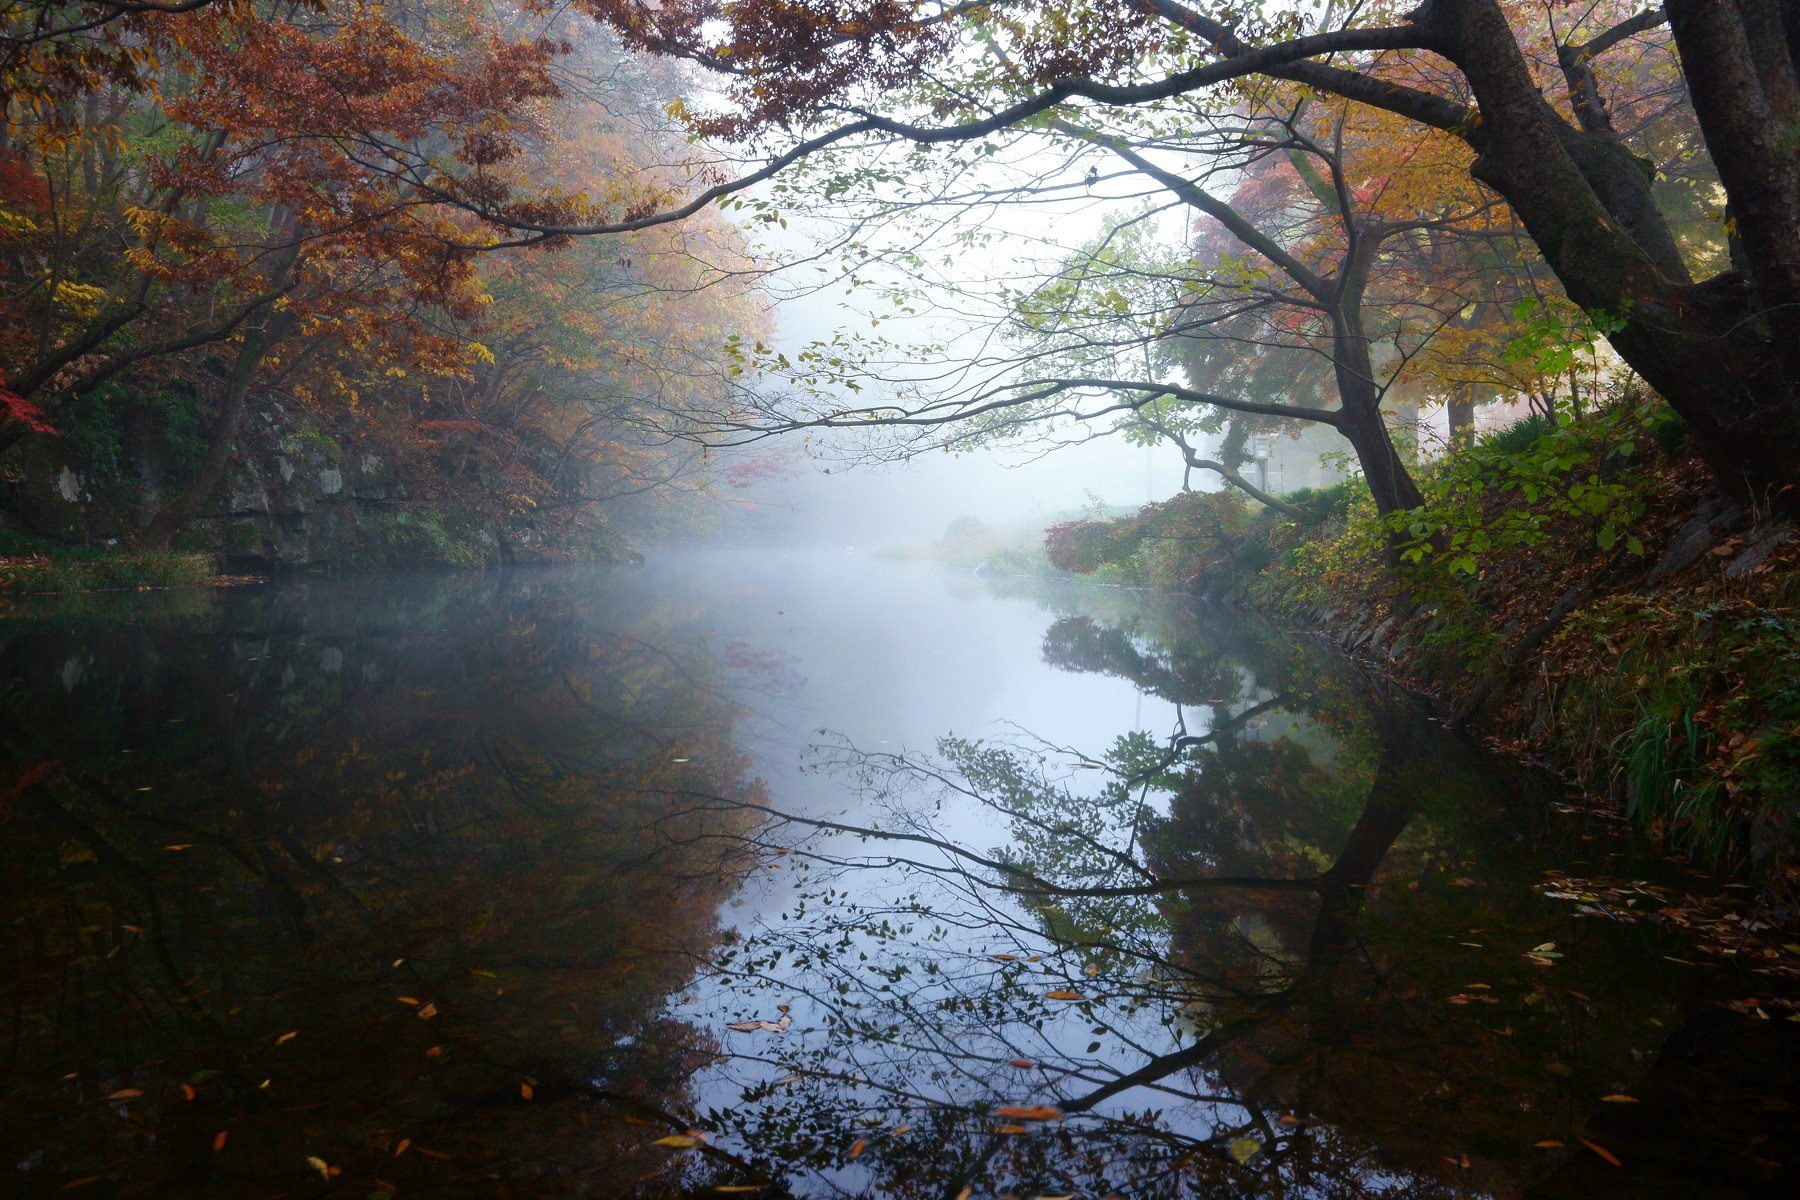 asia,korea,south korea,jeollabukdo,seonunsa temple,morning,misty,stream,fog,reflection, Shin